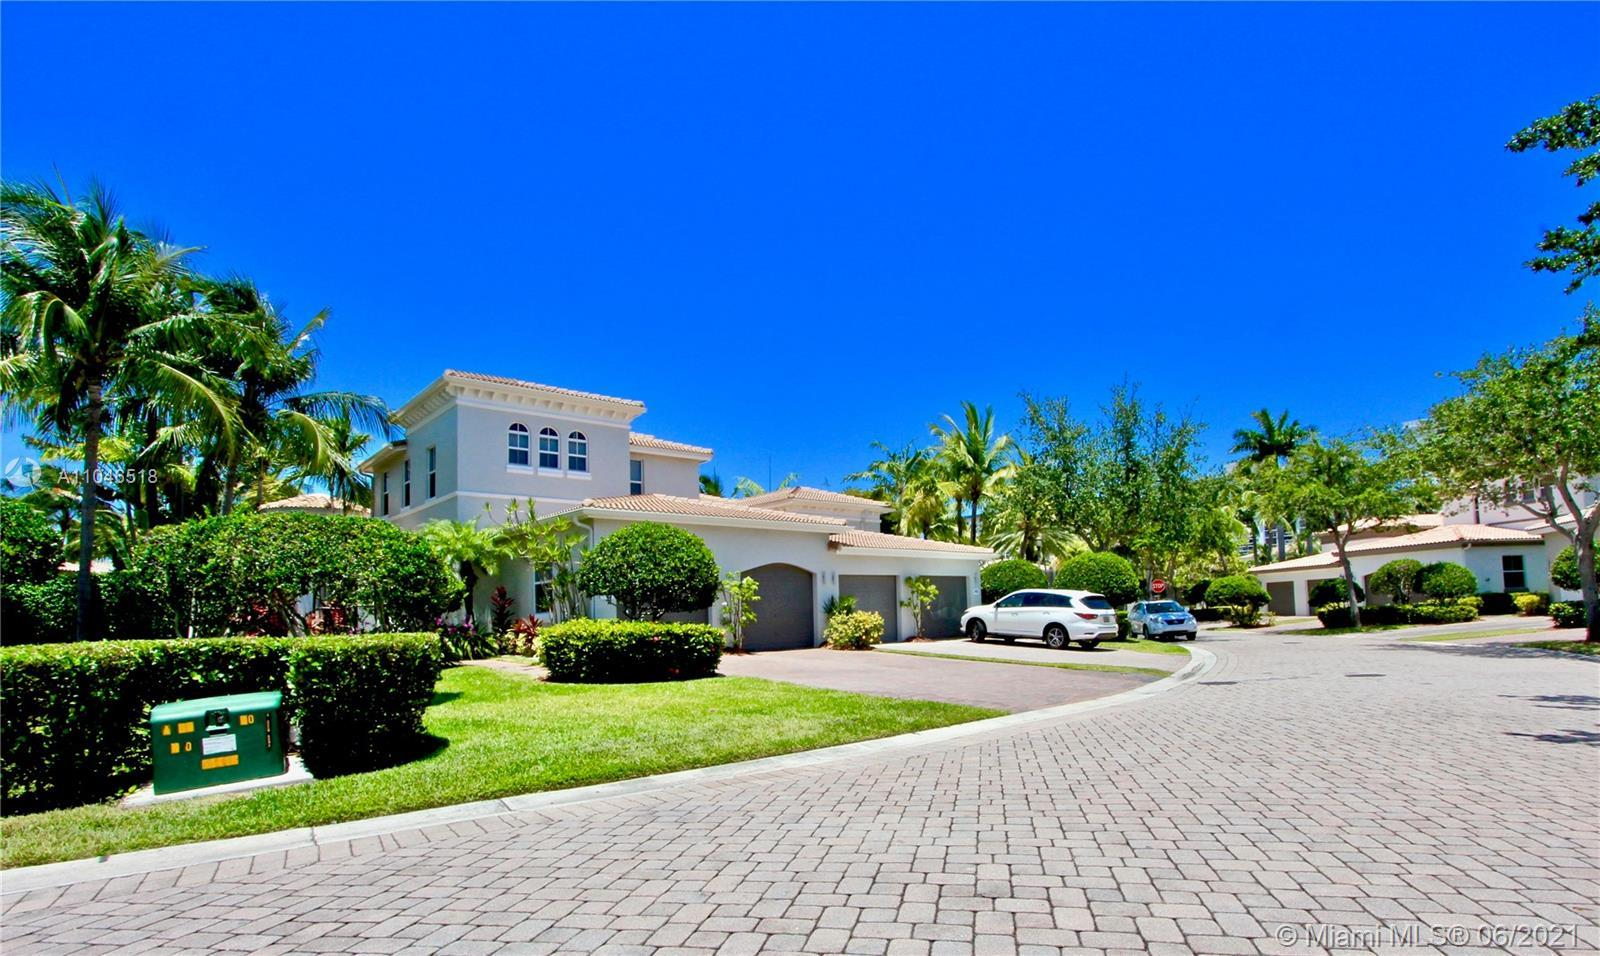 LIVE THE SOUTH FLORIDA LIFESTYLE IN A LOVELY COMMUNITY OF HARBOR ISLAND - LOCATED IN A 24-HR GATED C